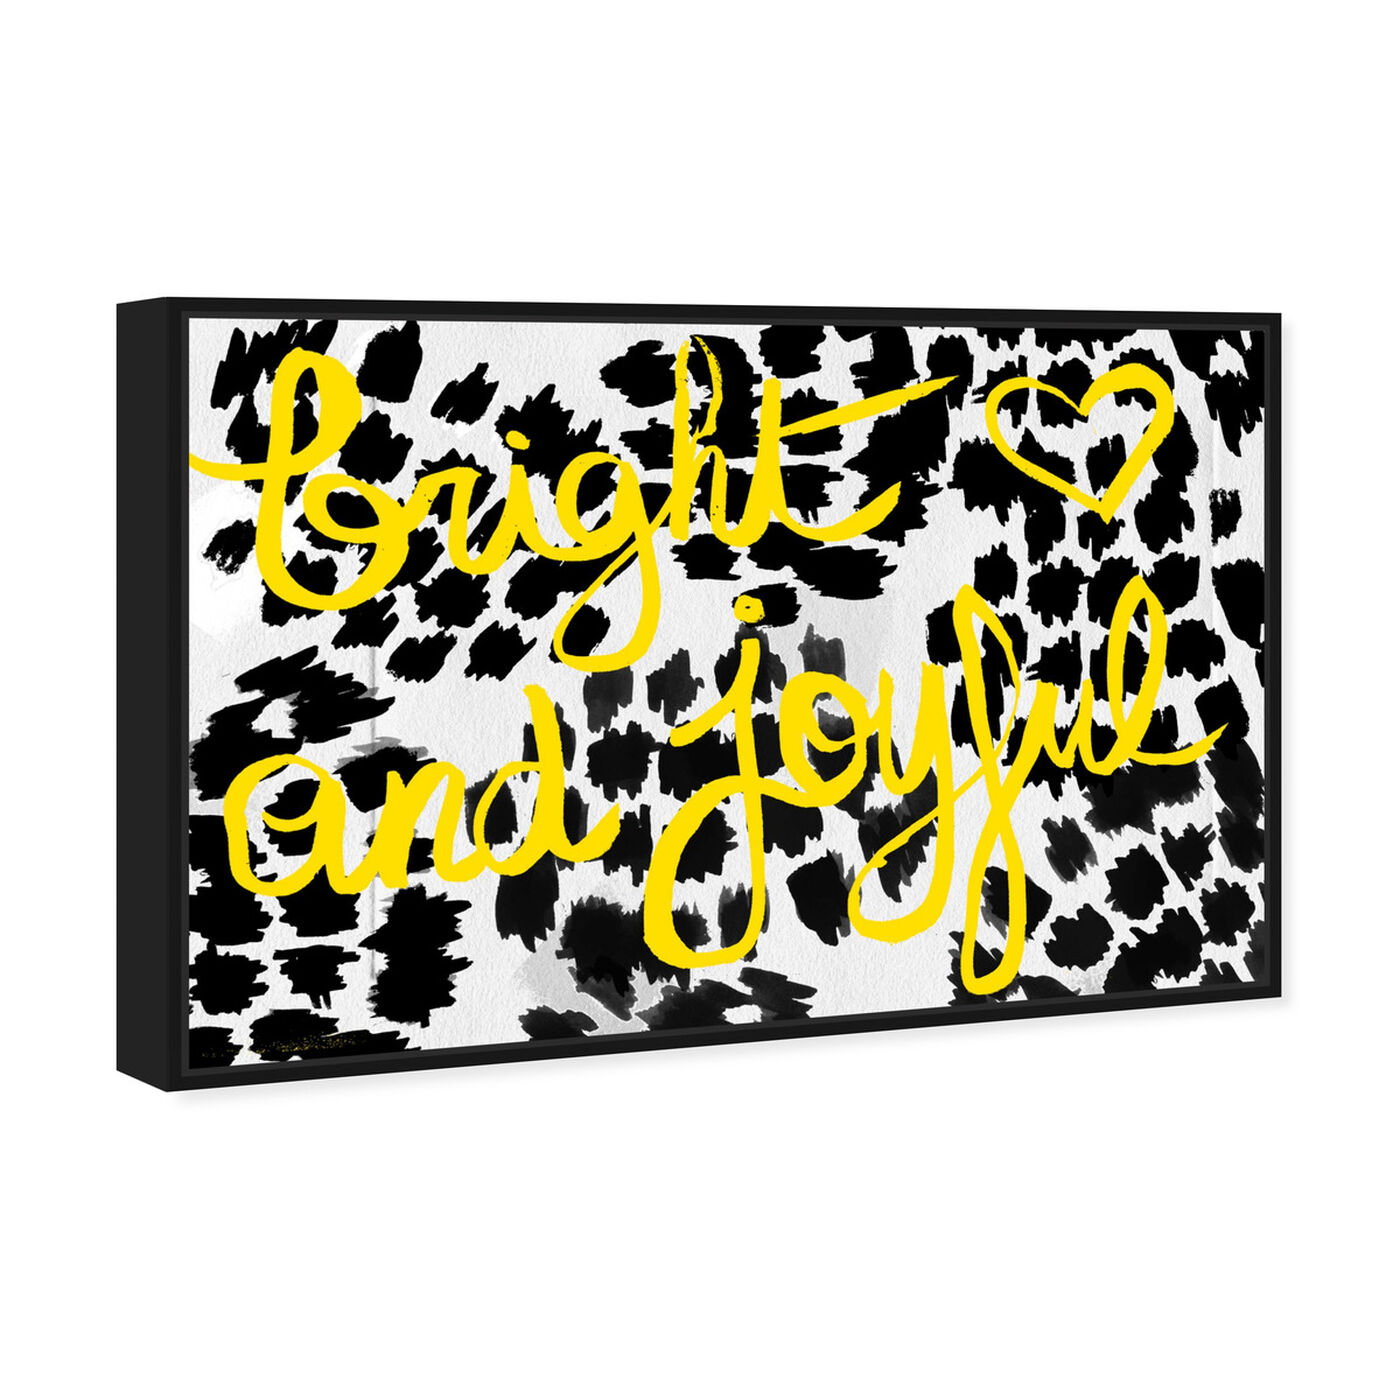 Angled view of Bright and Joyful featuring typography and quotes and inspirational quotes and sayings art.